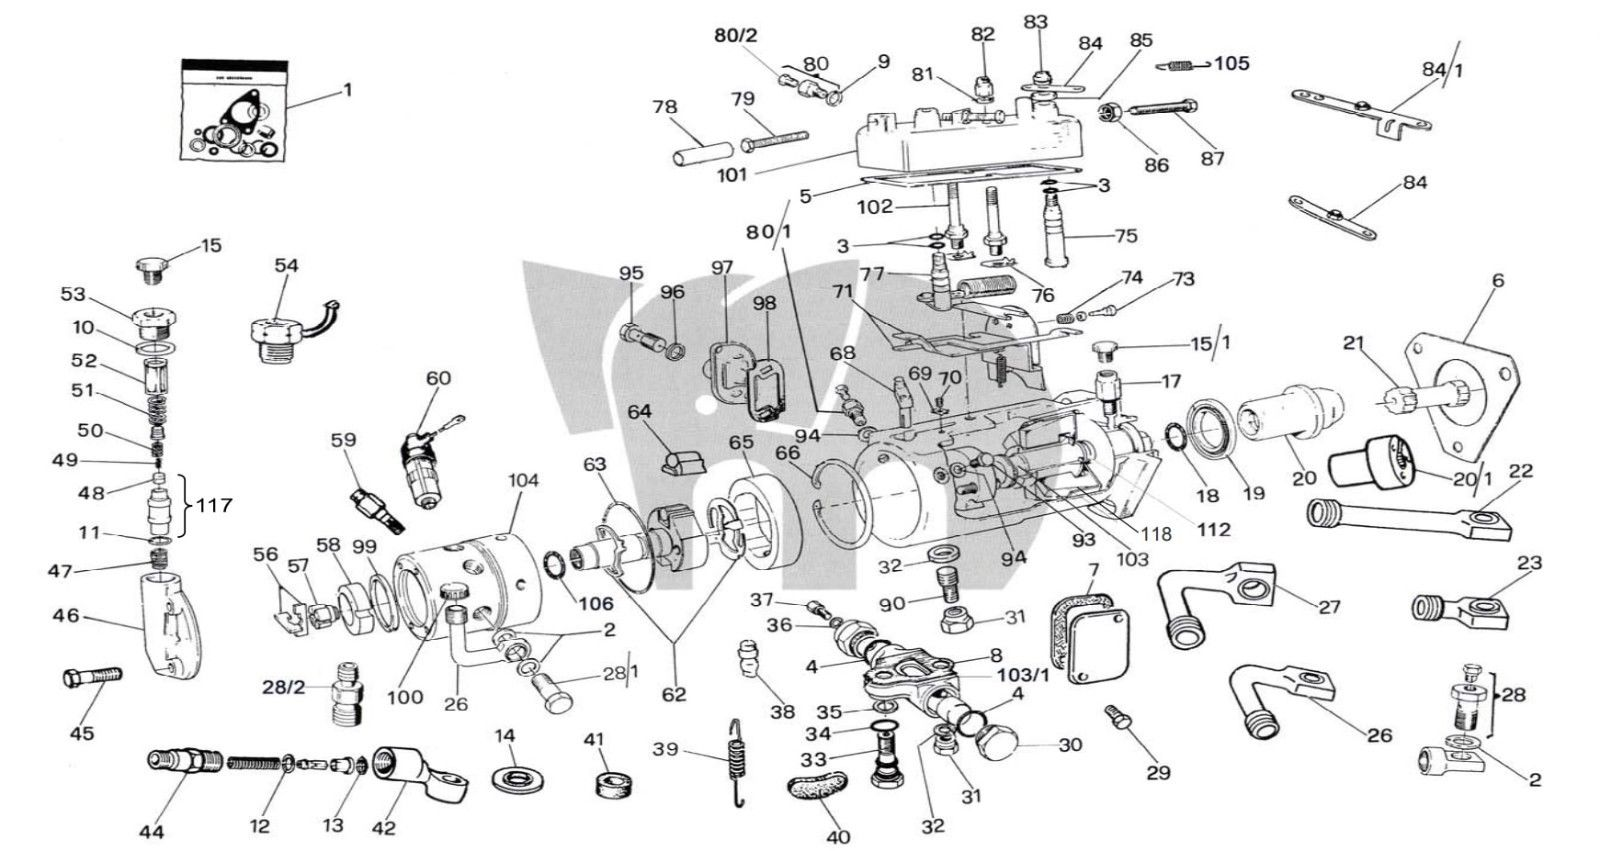 Service mf 6200 5400 hydraulic right hand cover plate besides Diagram Of The Mower Deak On A 42inch Dixon Zrt as well Cav Injection Pump Repair Manual in addition Viewit moreover Case 580 580m Transaxle. on john deere transfer case